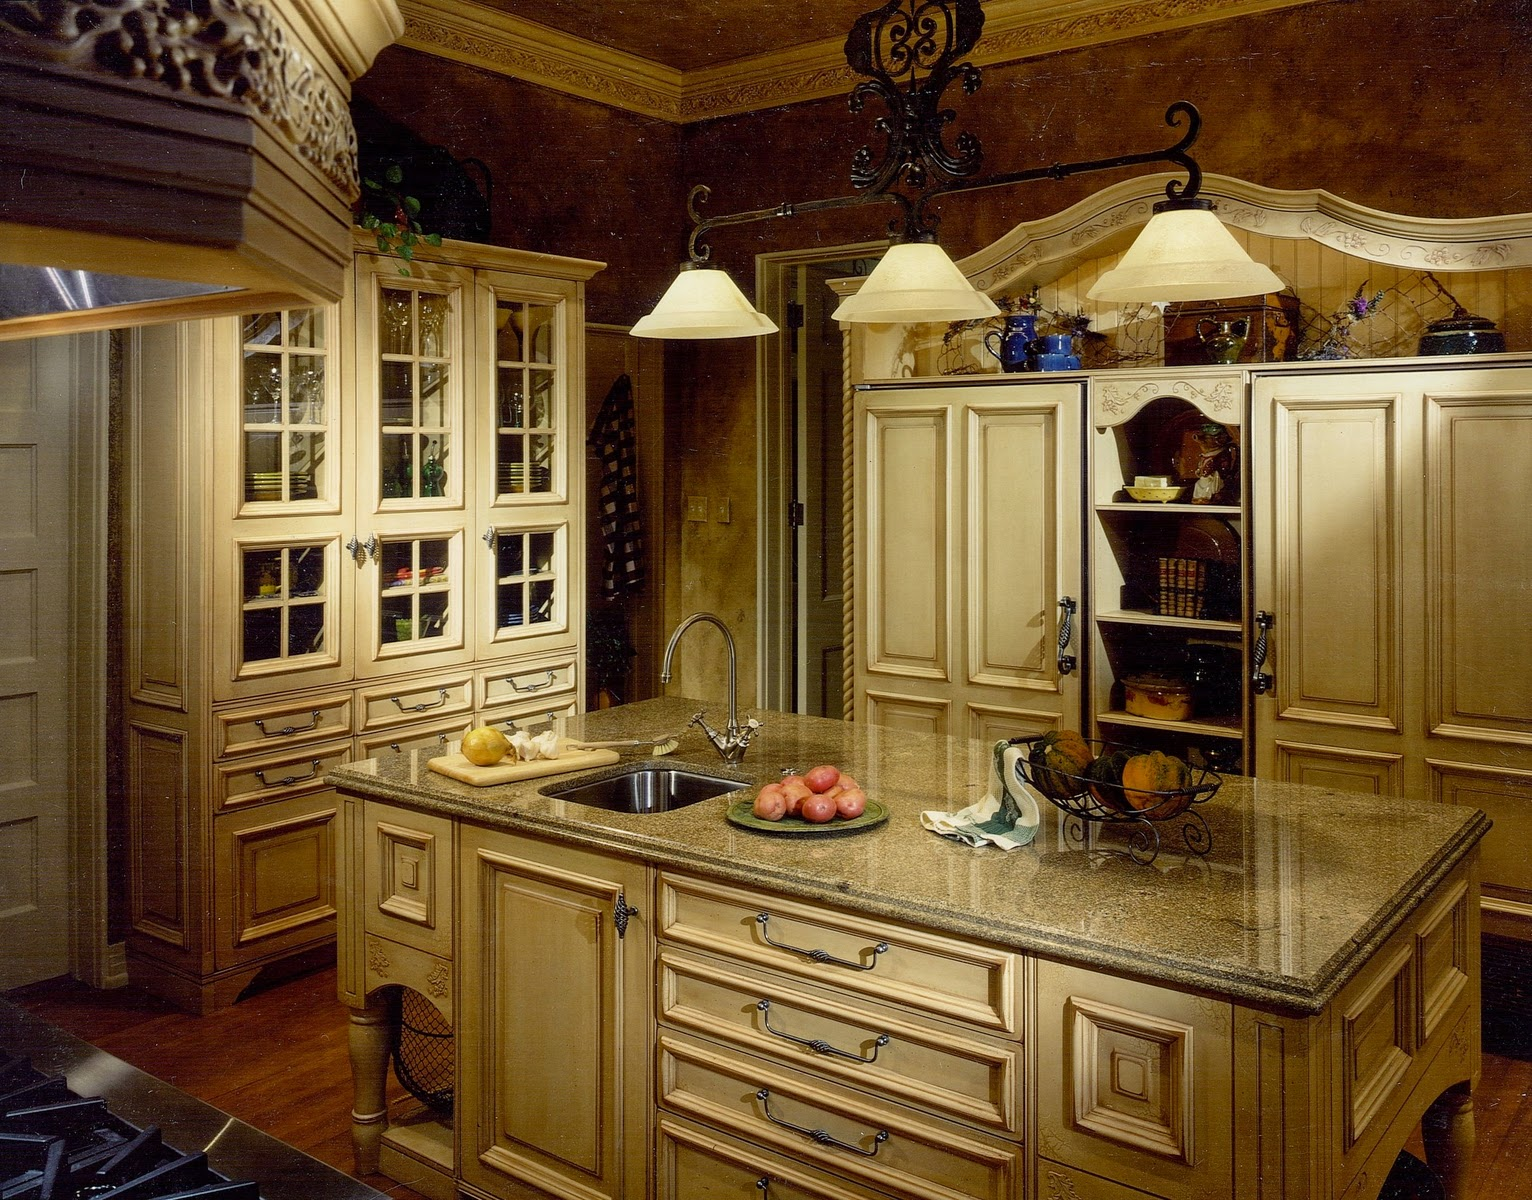 French country kitchen cabinets instant knowledge for The kitchen cupboard